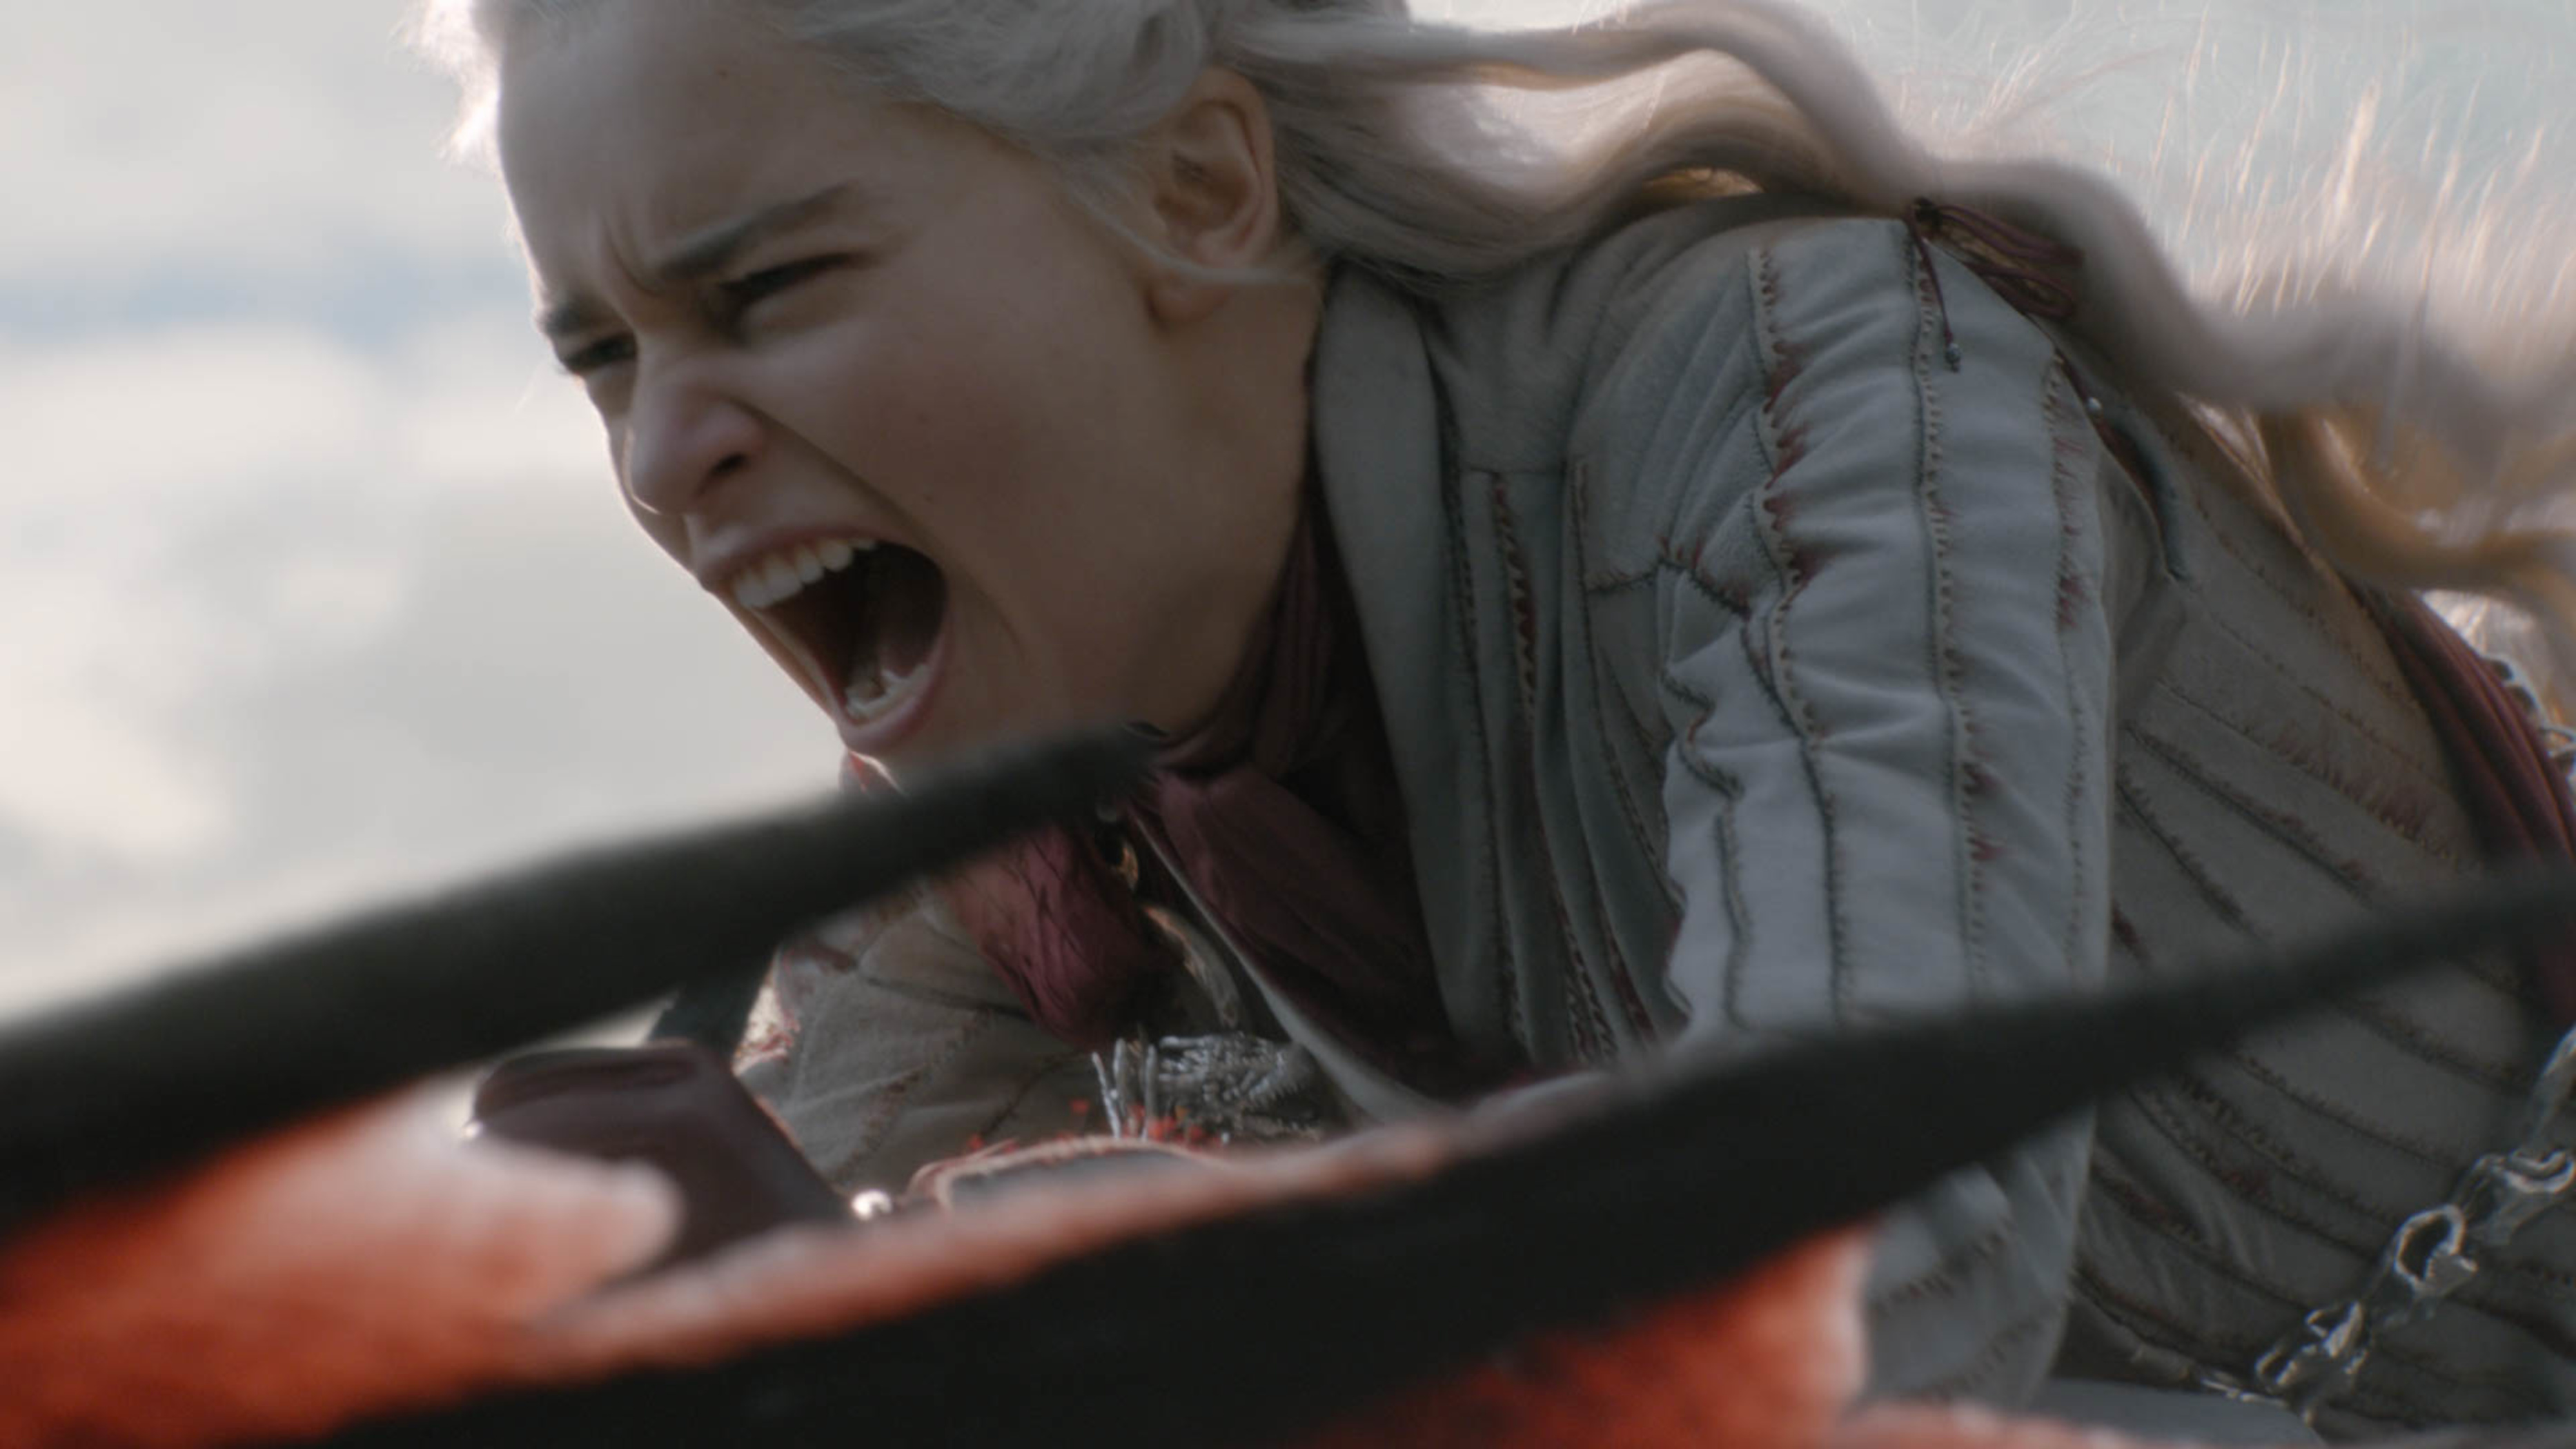 Over 300,000 Angry 'Game of Thrones' Fans Sign Petition to